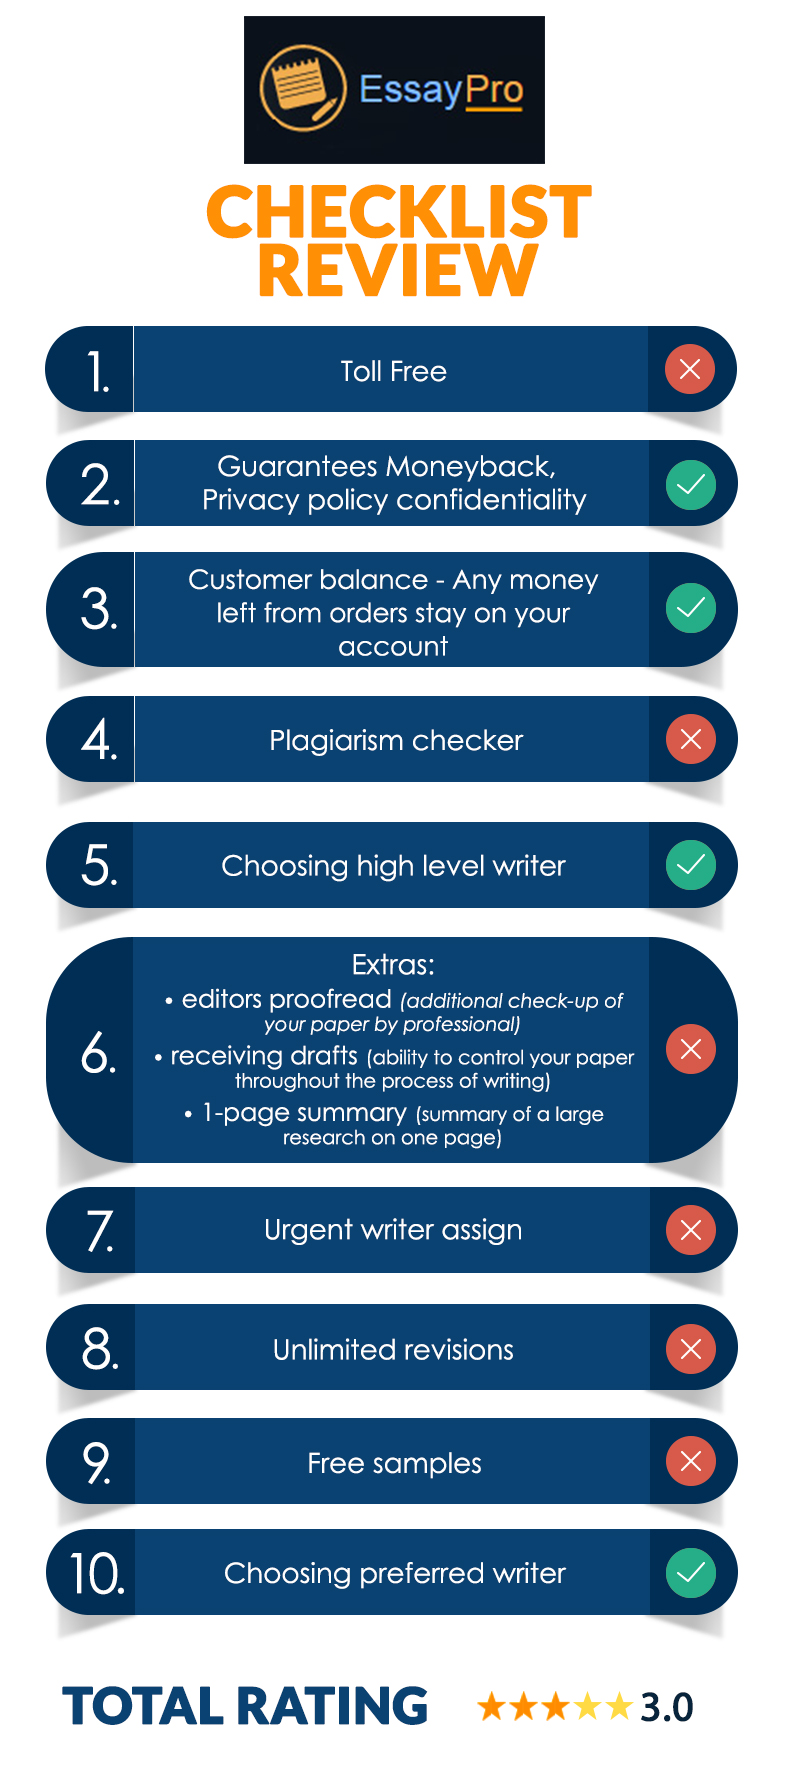 Are You Looking For Writing Service Like EssayPro? by bestessayreview